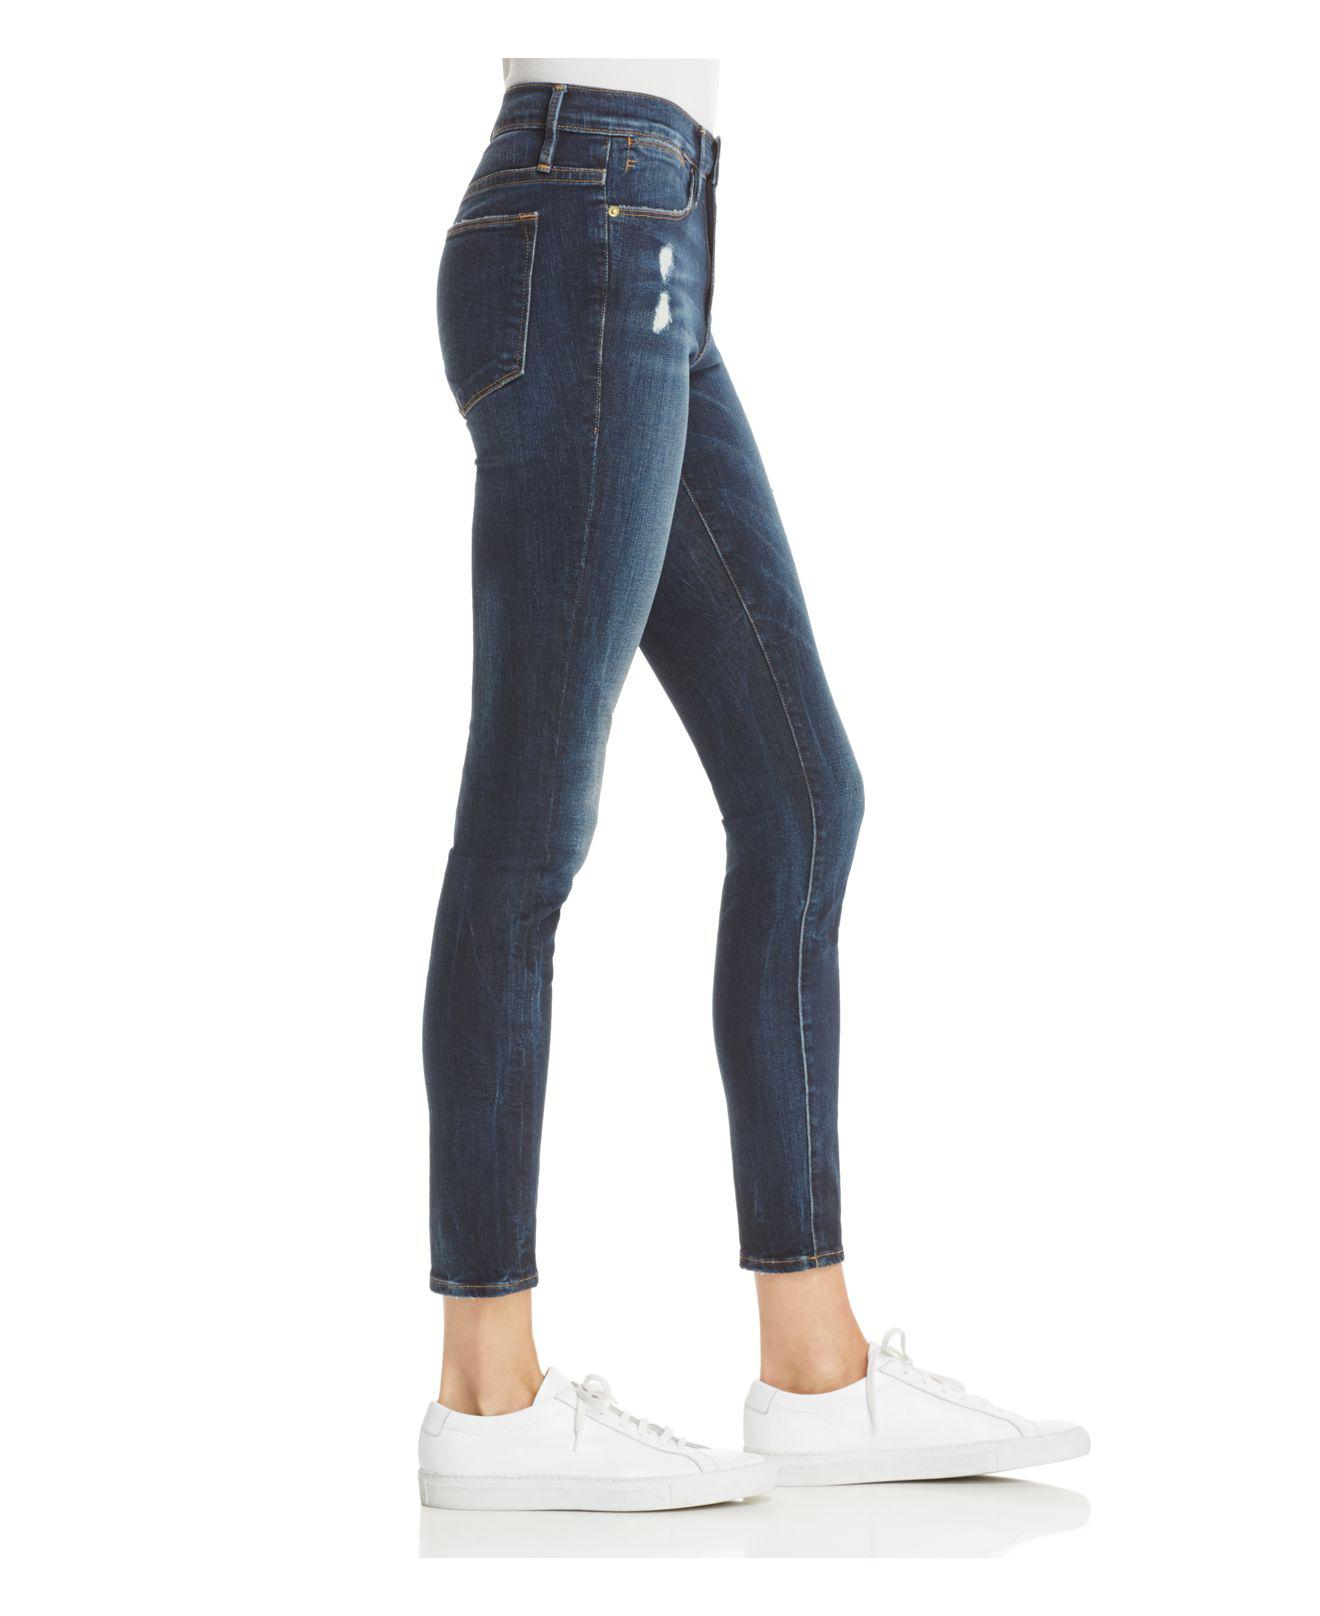 5abe2fae647 FRAME Le High Distressed Skinny Jeans In Oasis in Blue - Lyst